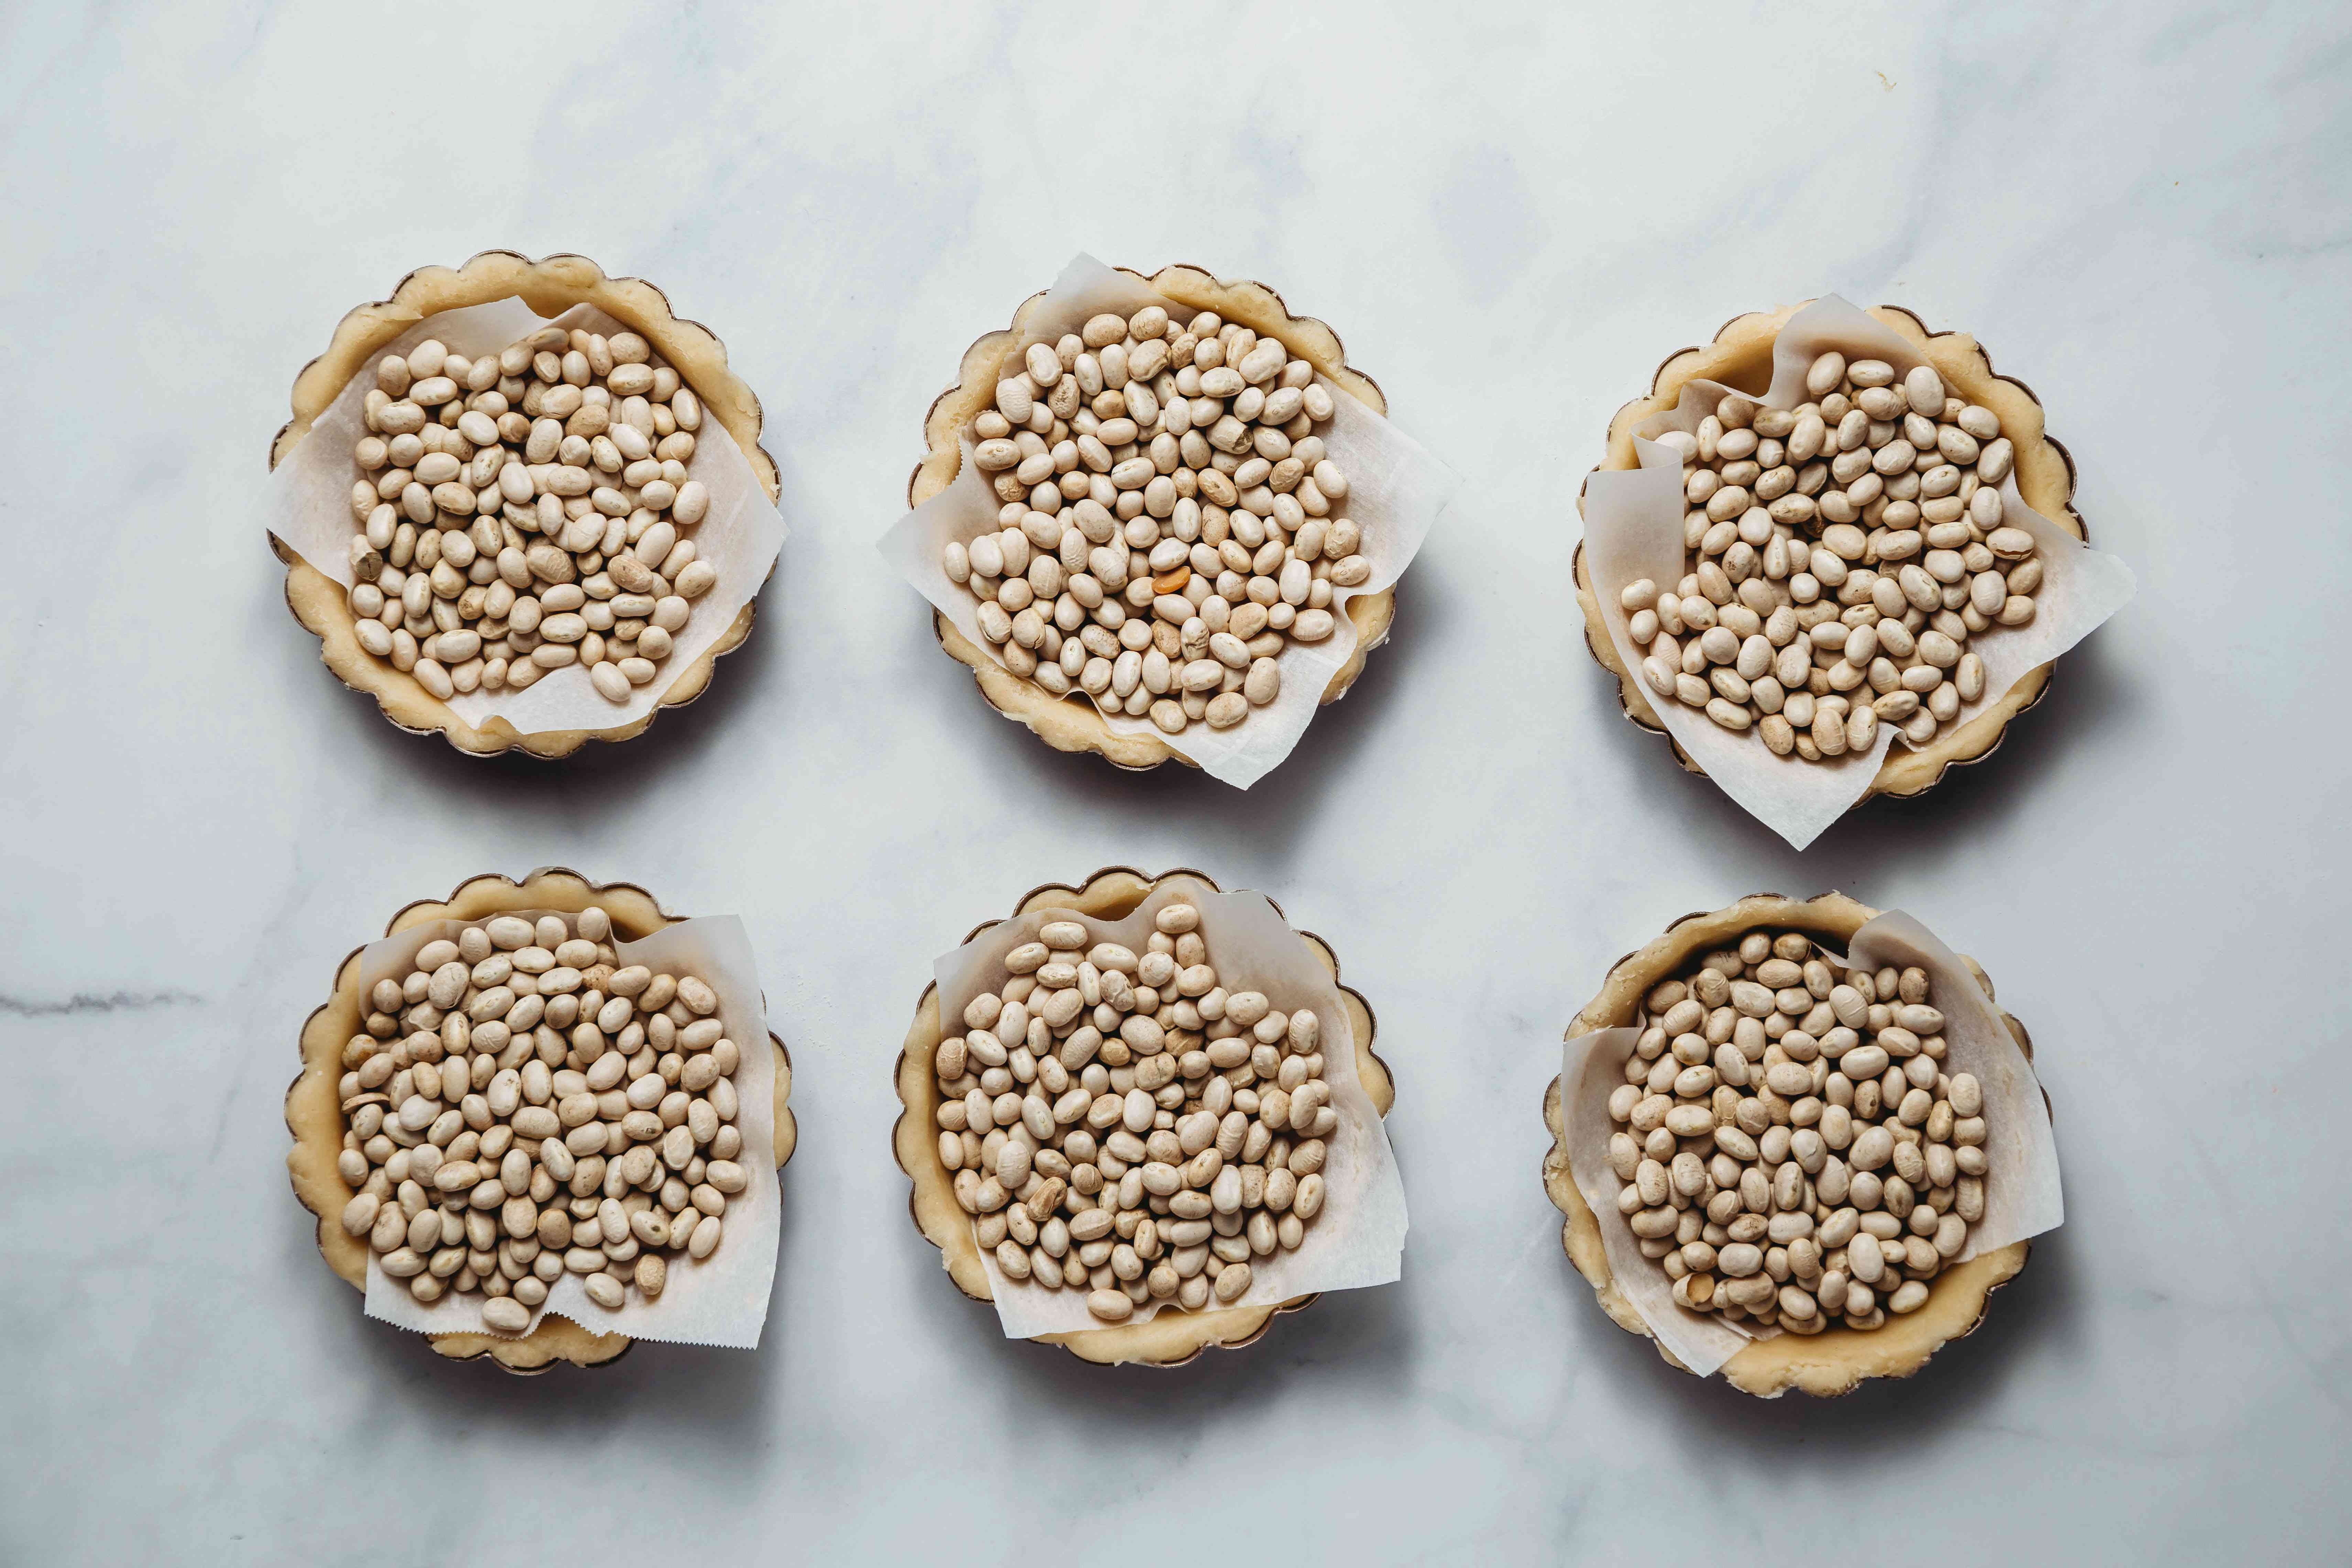 Line the shells with parchment paper and fill with uncooked beans